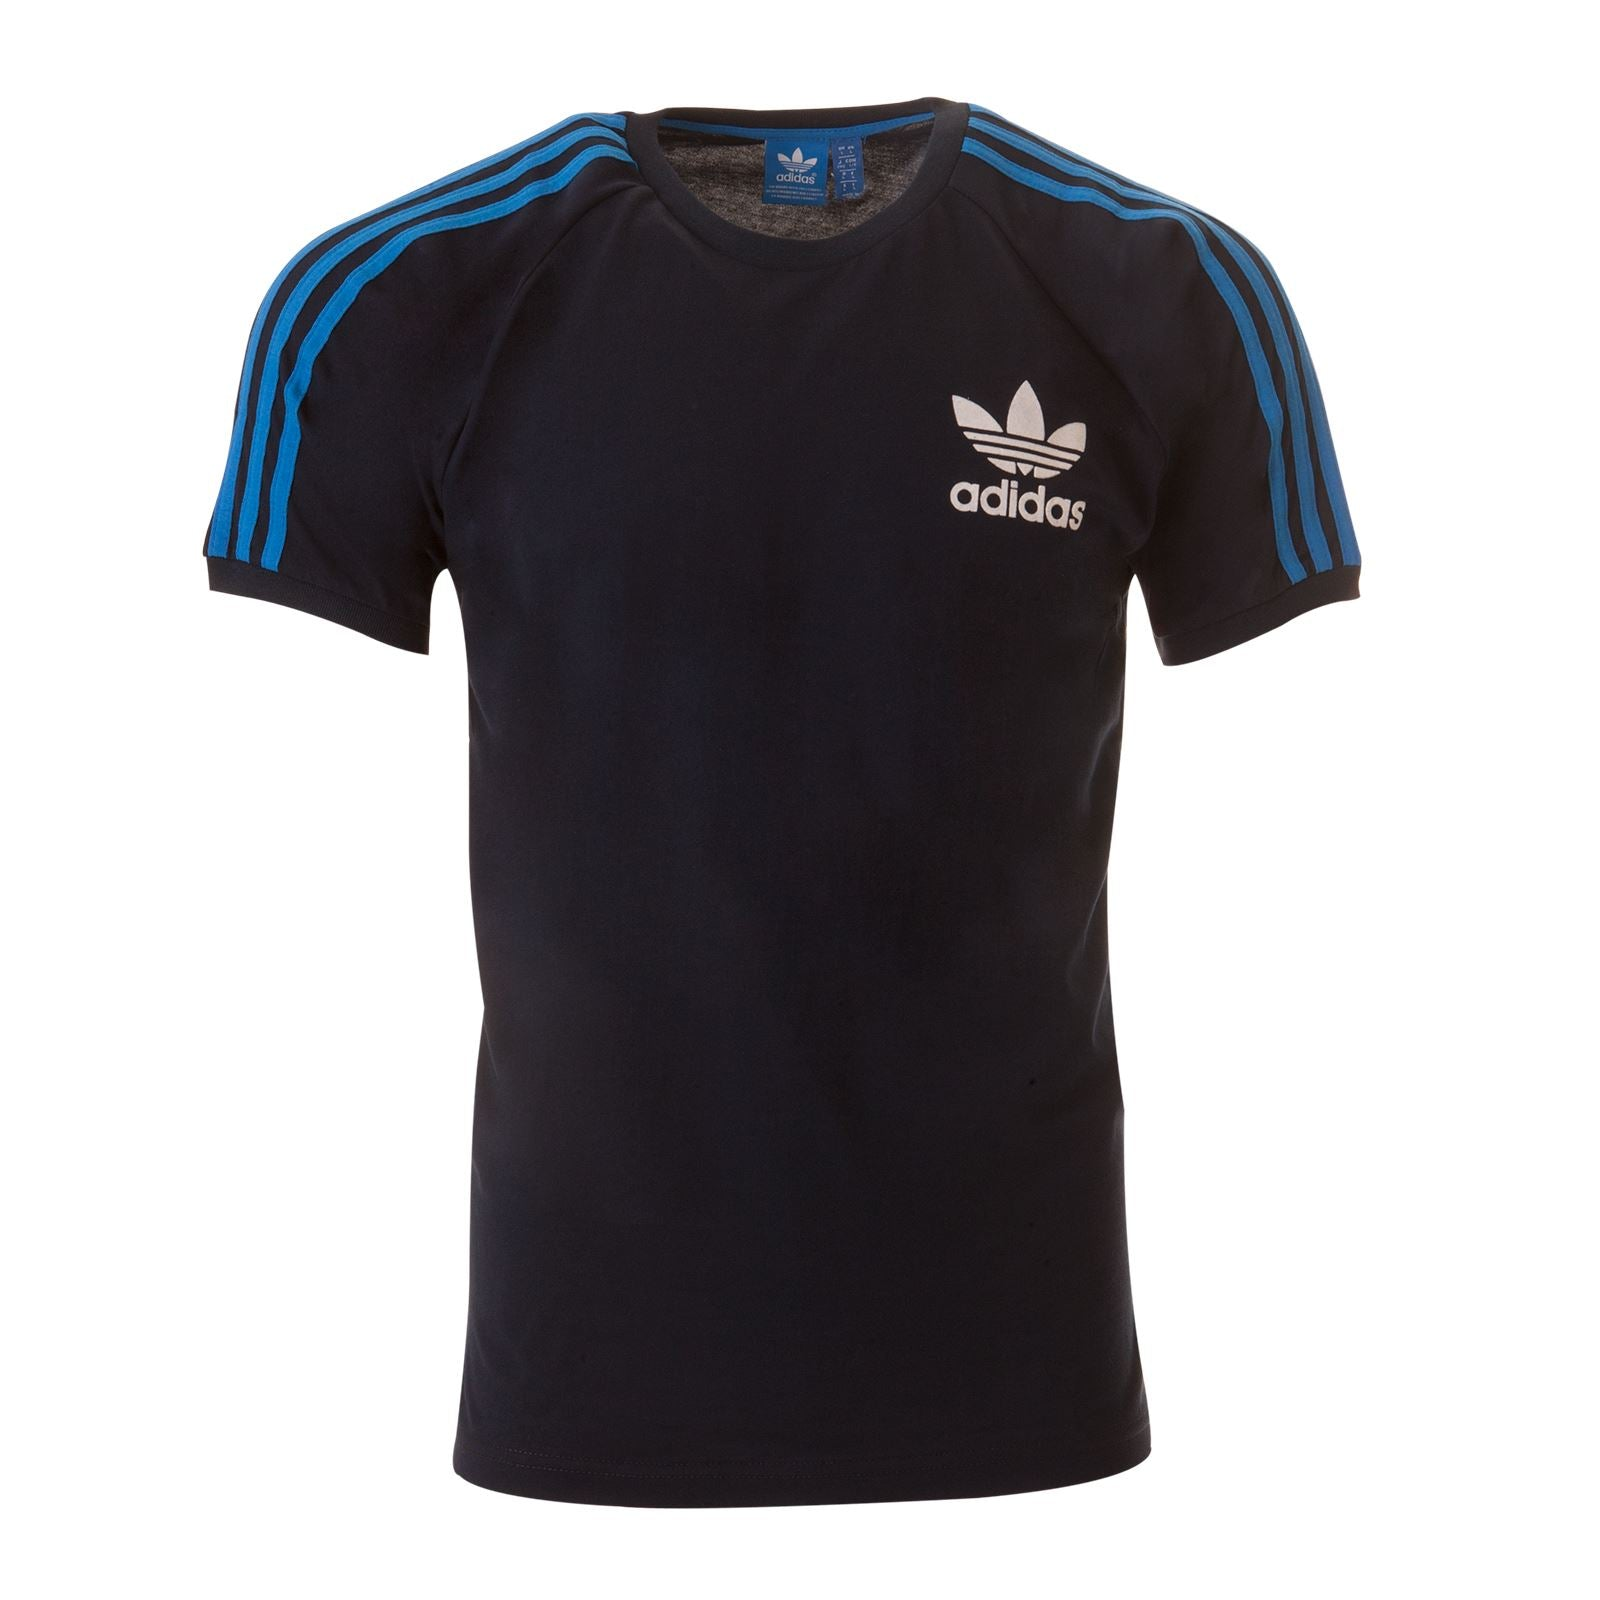 ADIDAS ORIGINALS SPORT ESSENTIALS CALIFORNIA TEE Mens BLACK/NAVY/BLUE/WHITE S-XL BLUE STRIPE